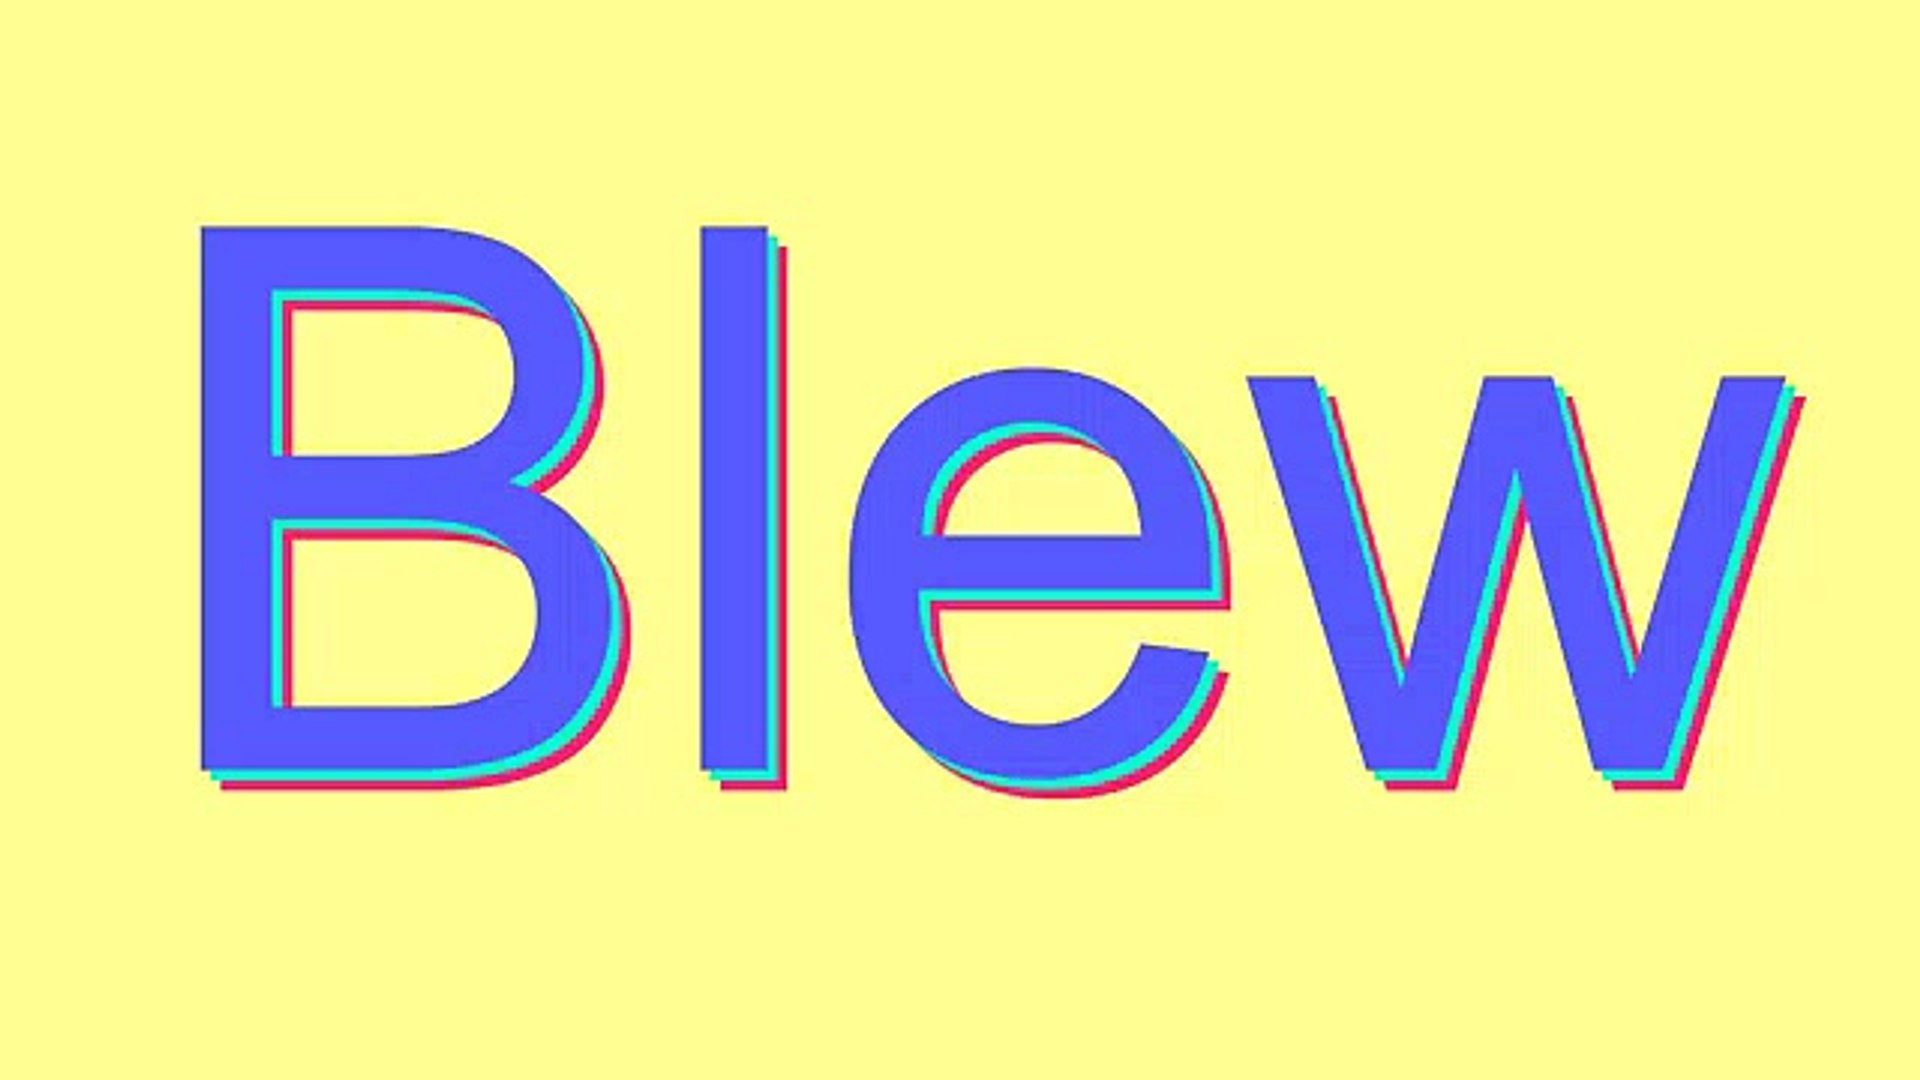 How to Pronounce Blew